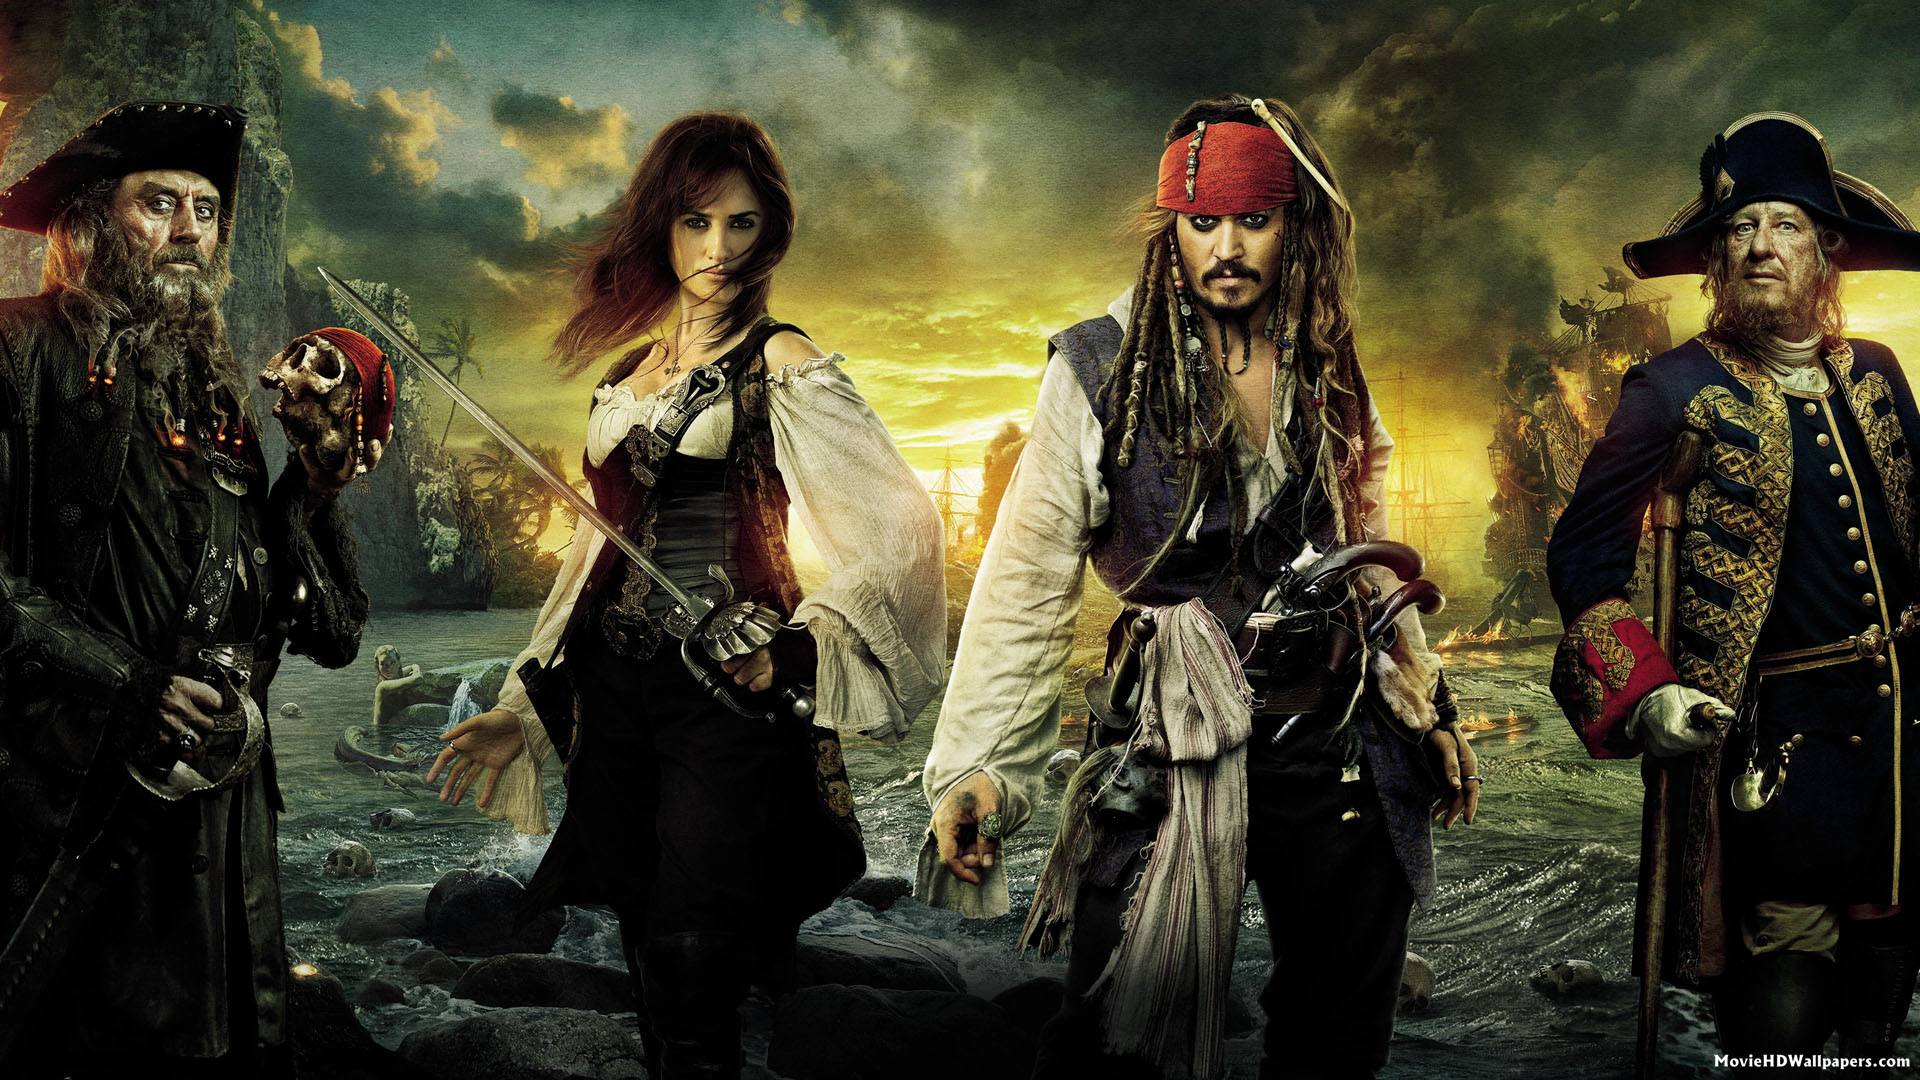 Pirates of the Caribbean On Stranger Tides Cast